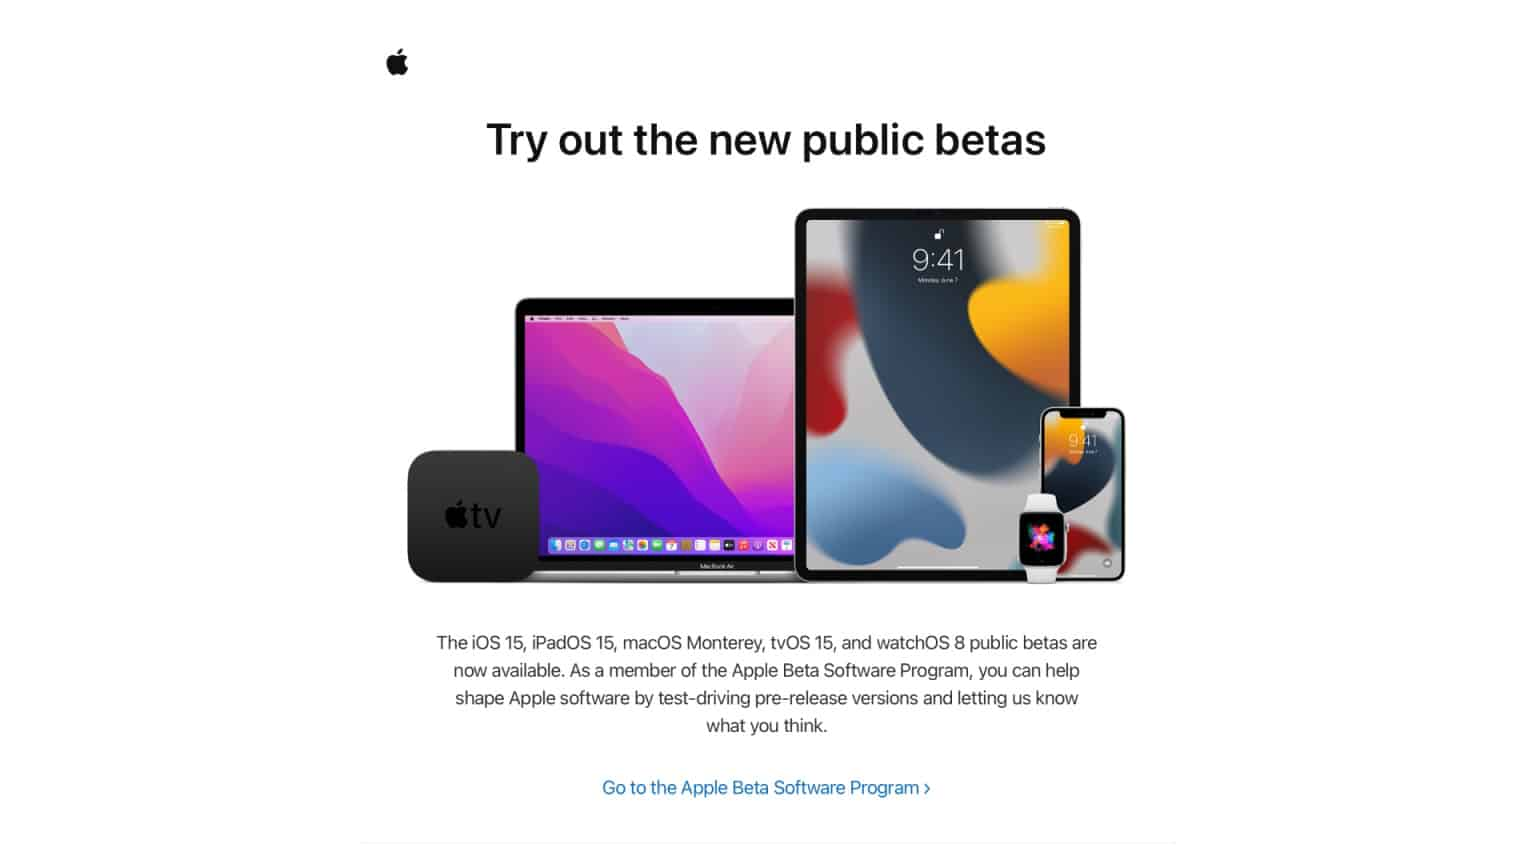 Apple expands public beta testing to more users: iOS 15, macOS 12, iPadOS 15, and more